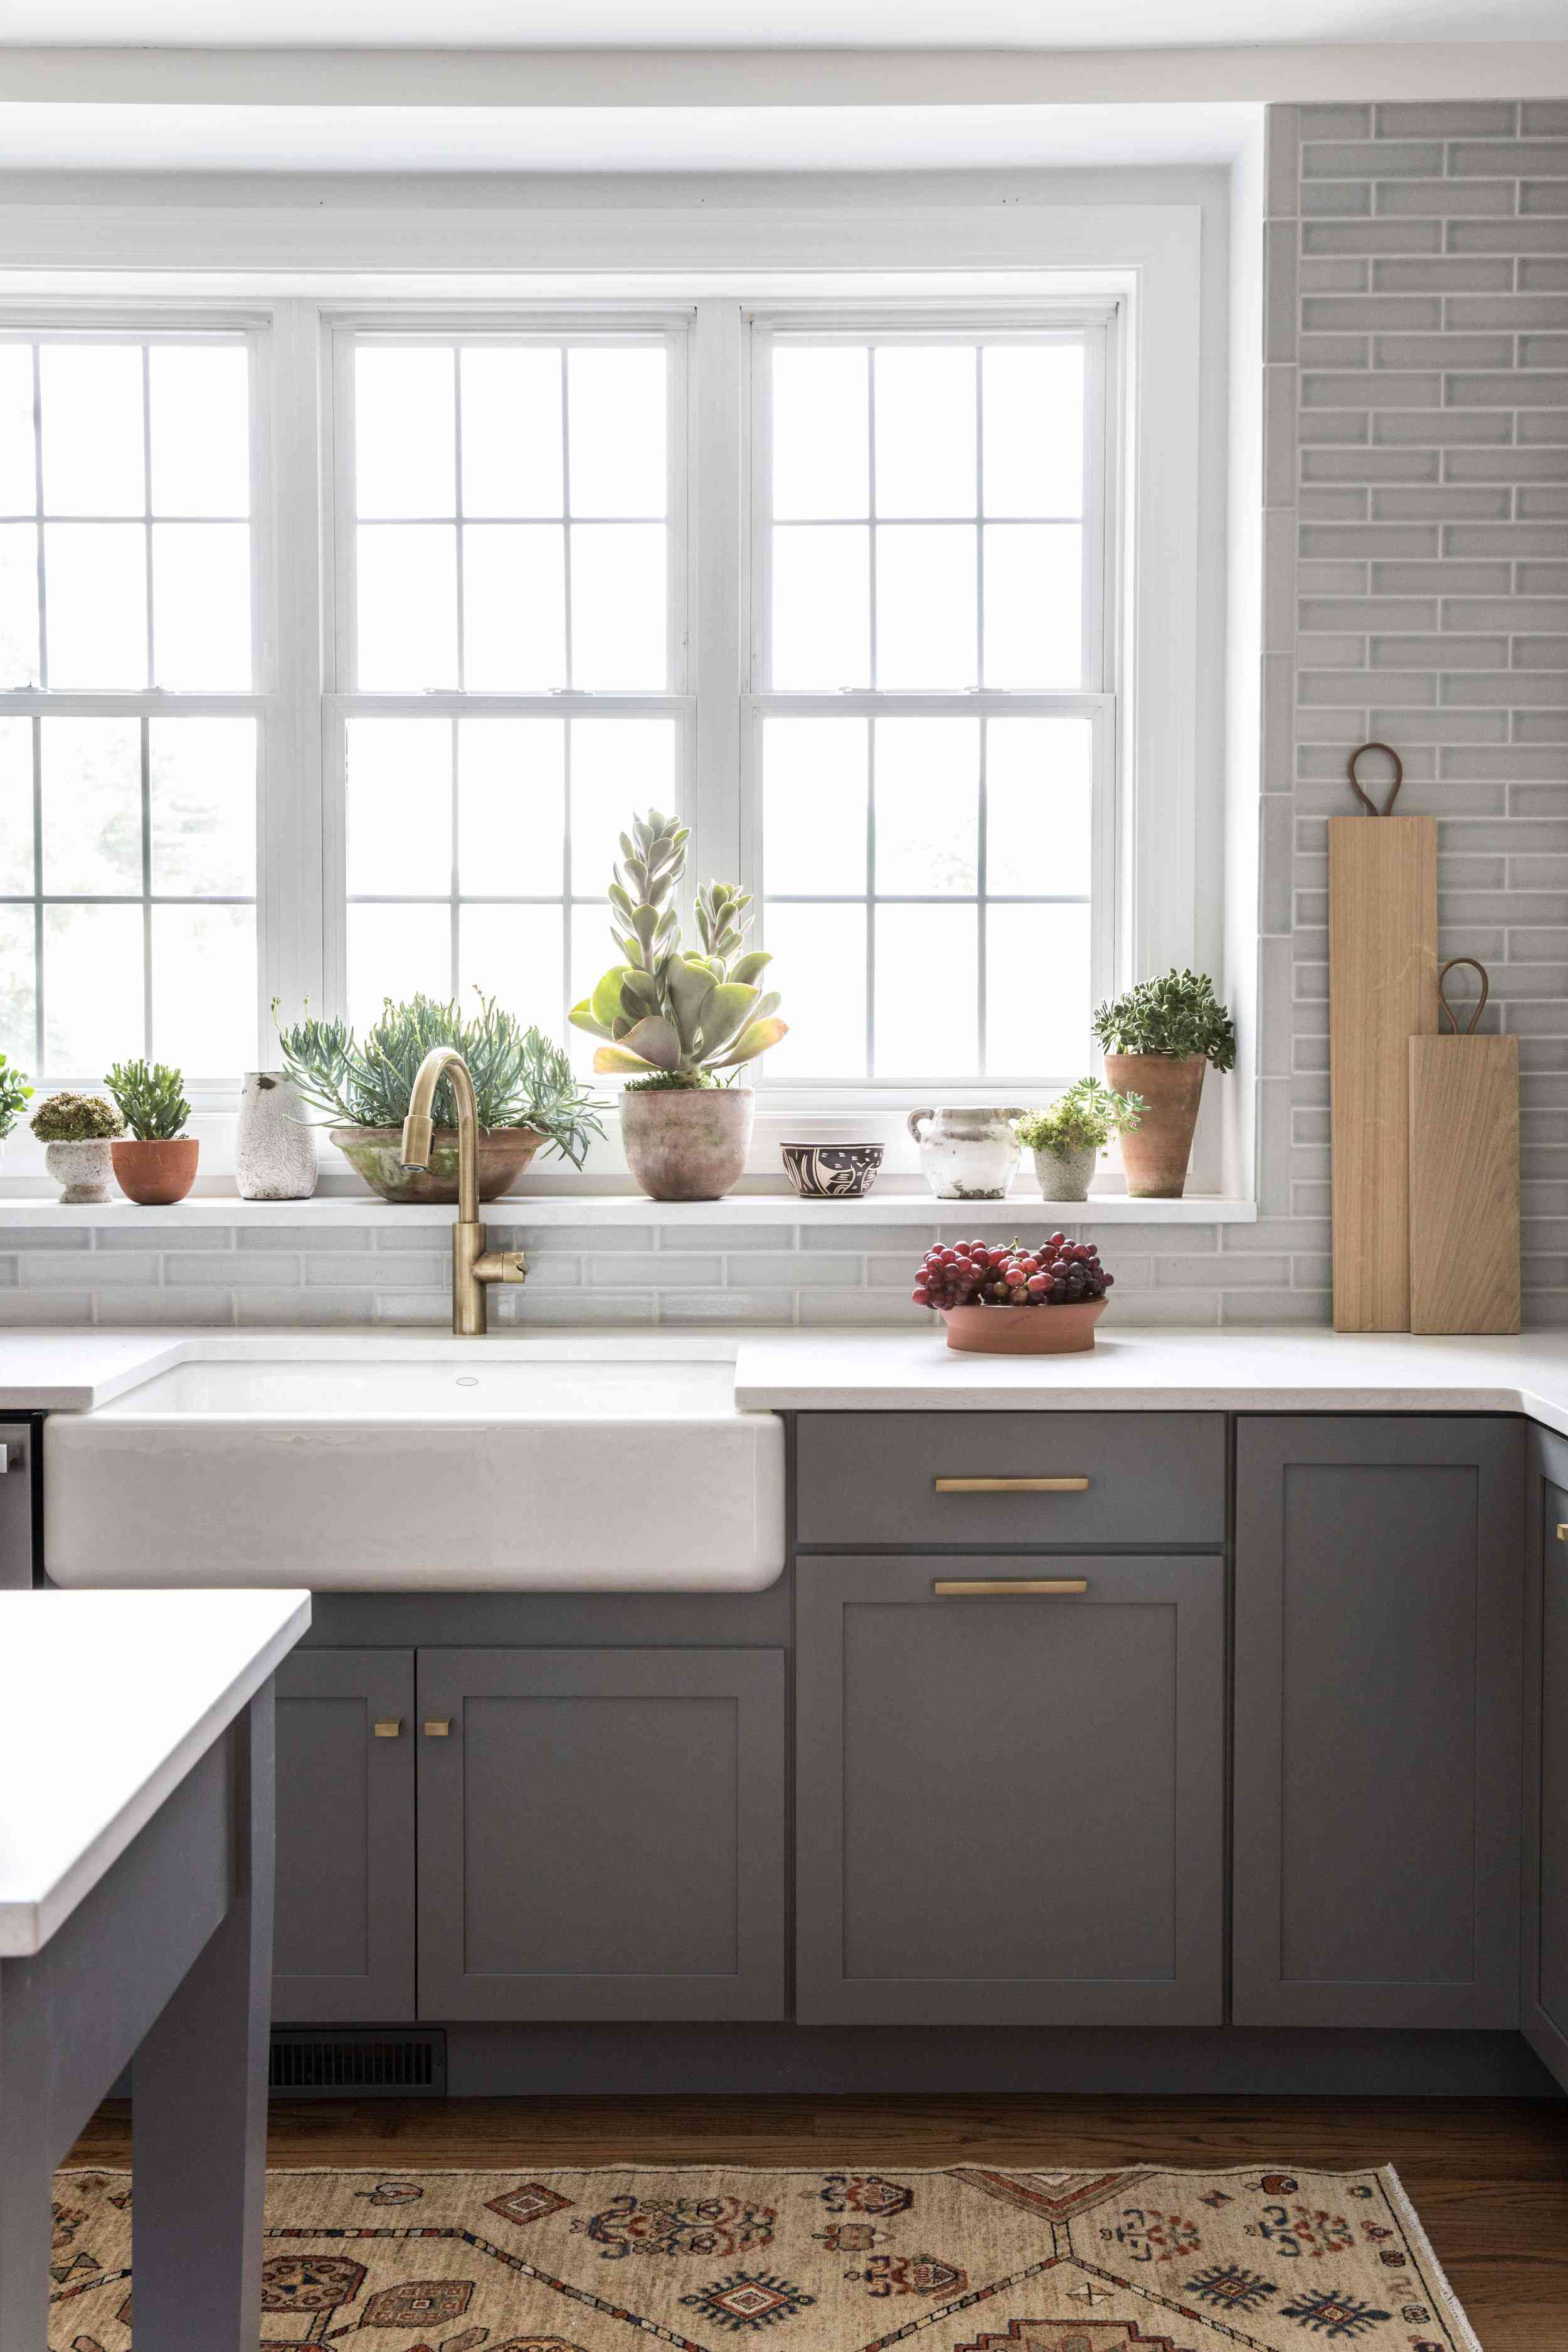 A kitchen with gray kitchen cabinets and a light gray tiled backsplash